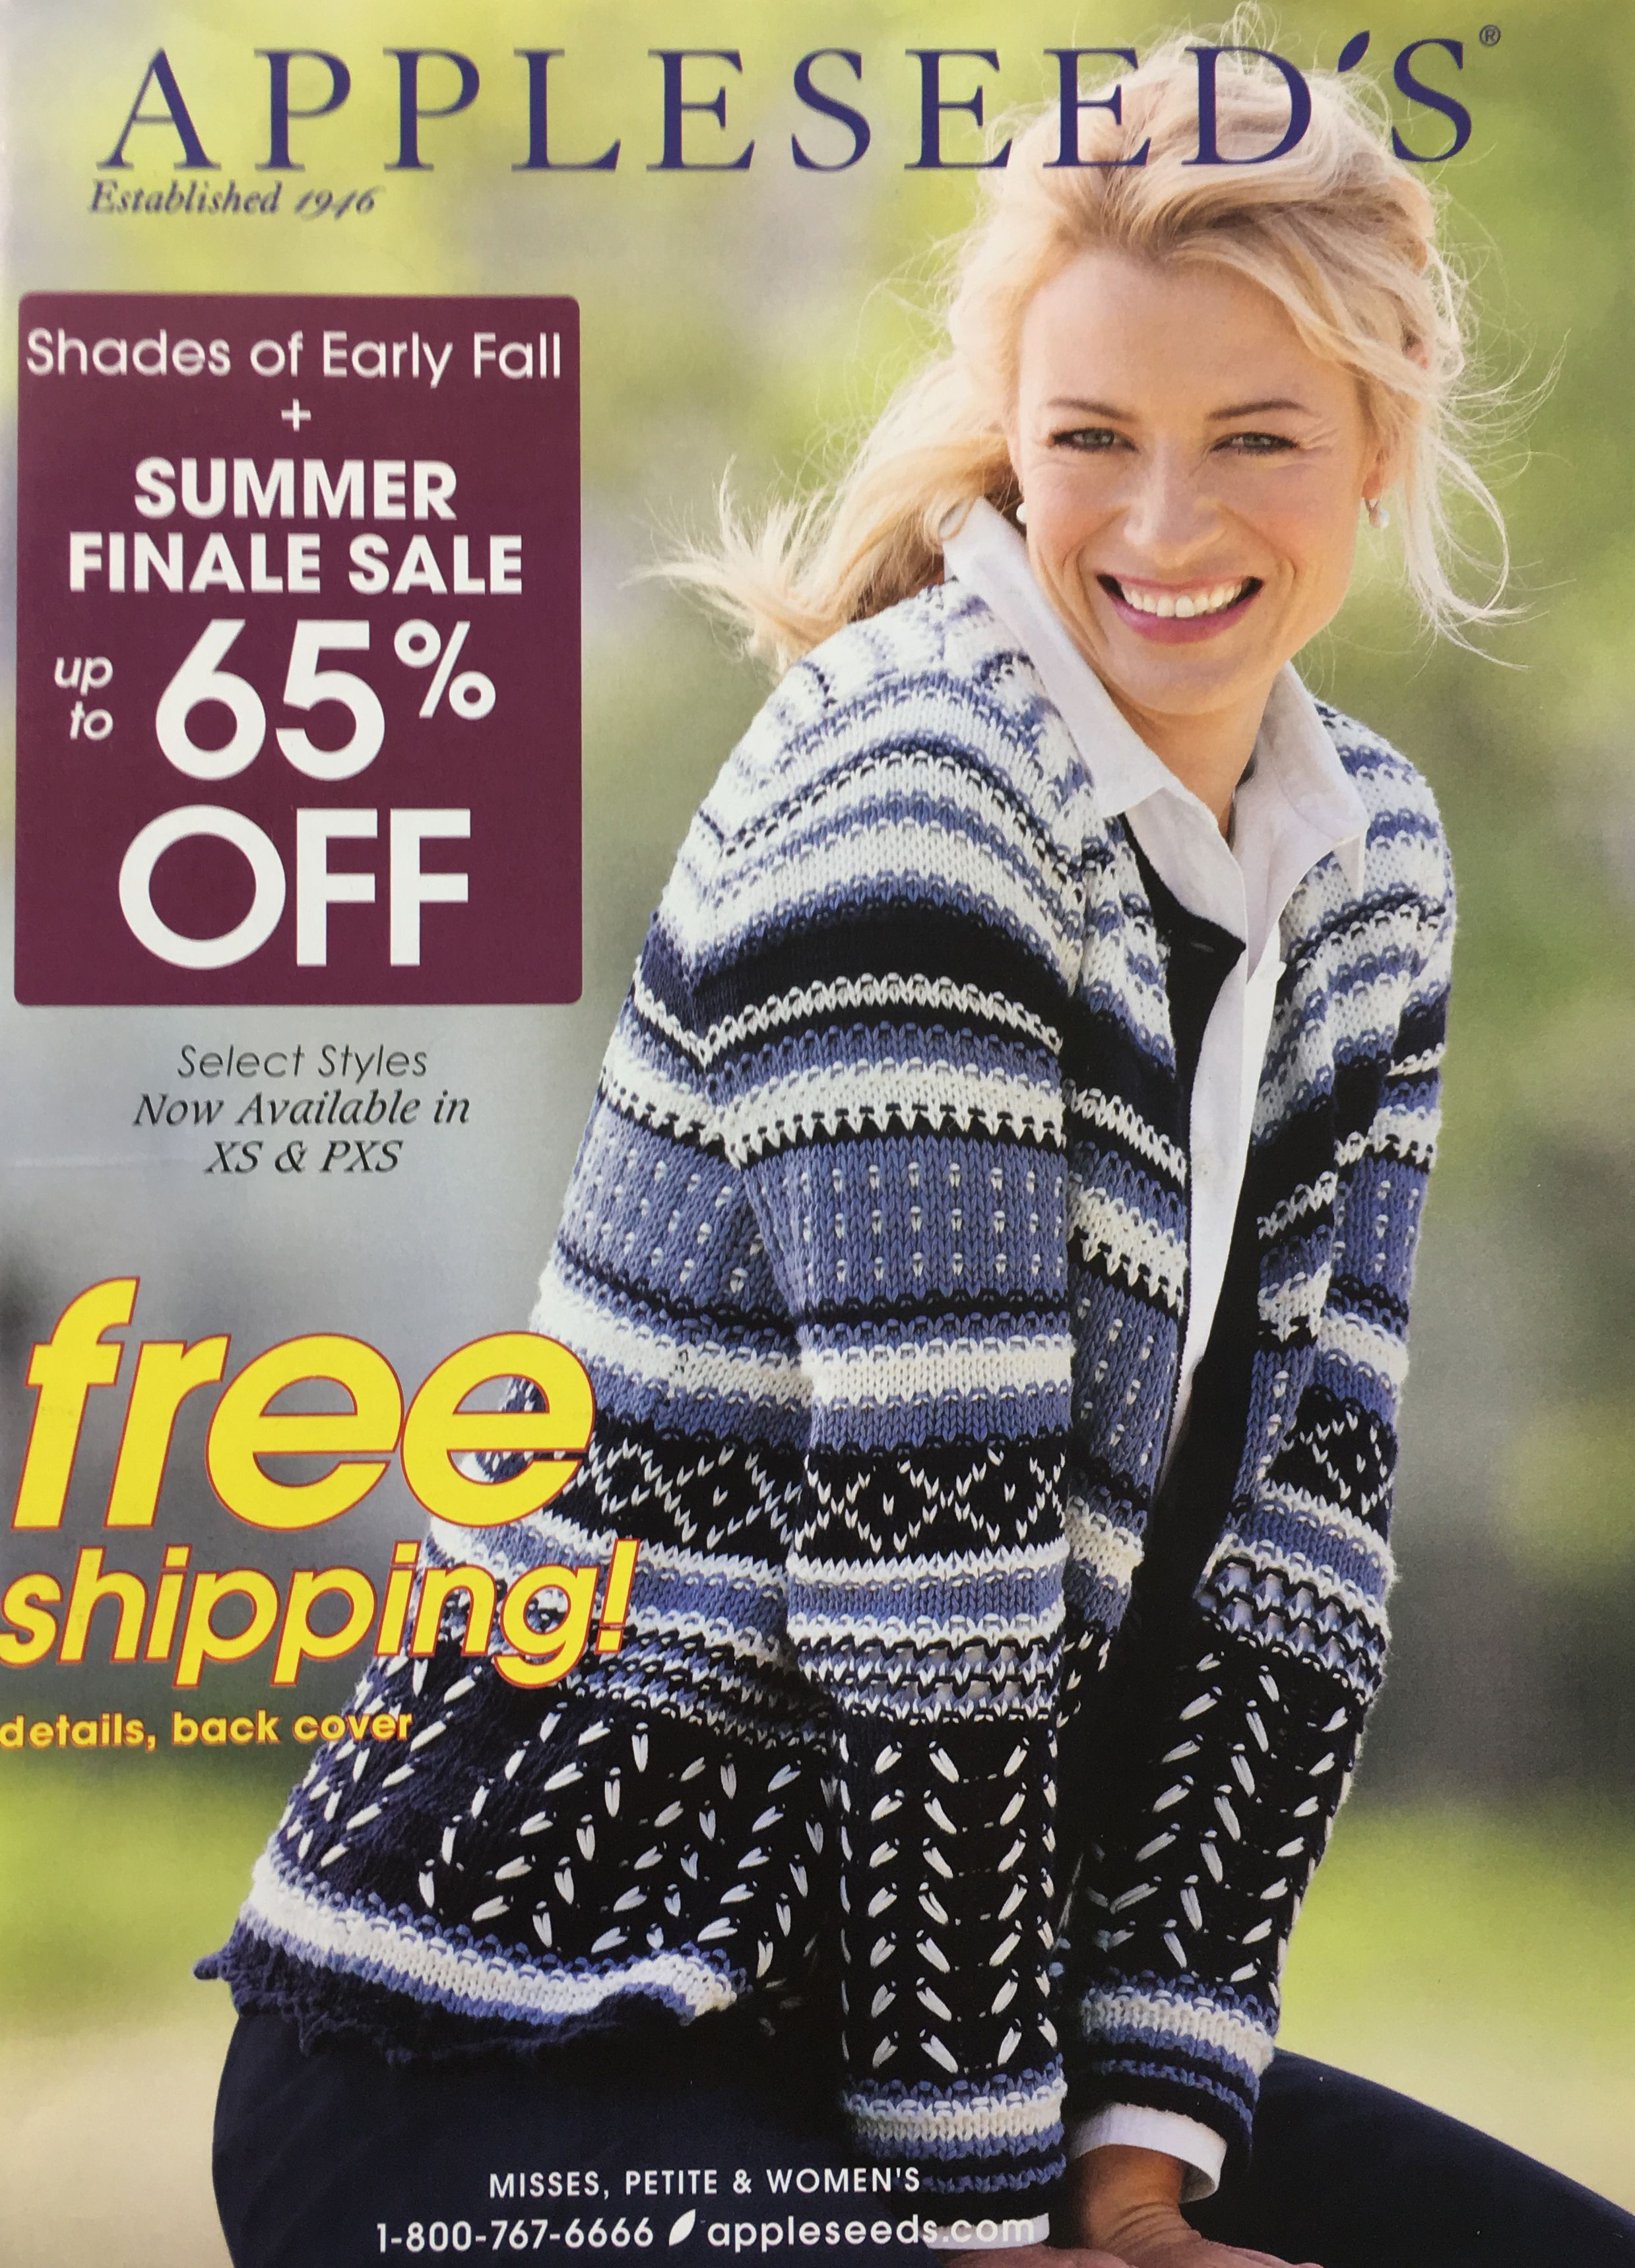 21 Free Women S Clothing Catalogs In 2019 Sources Appleseeds